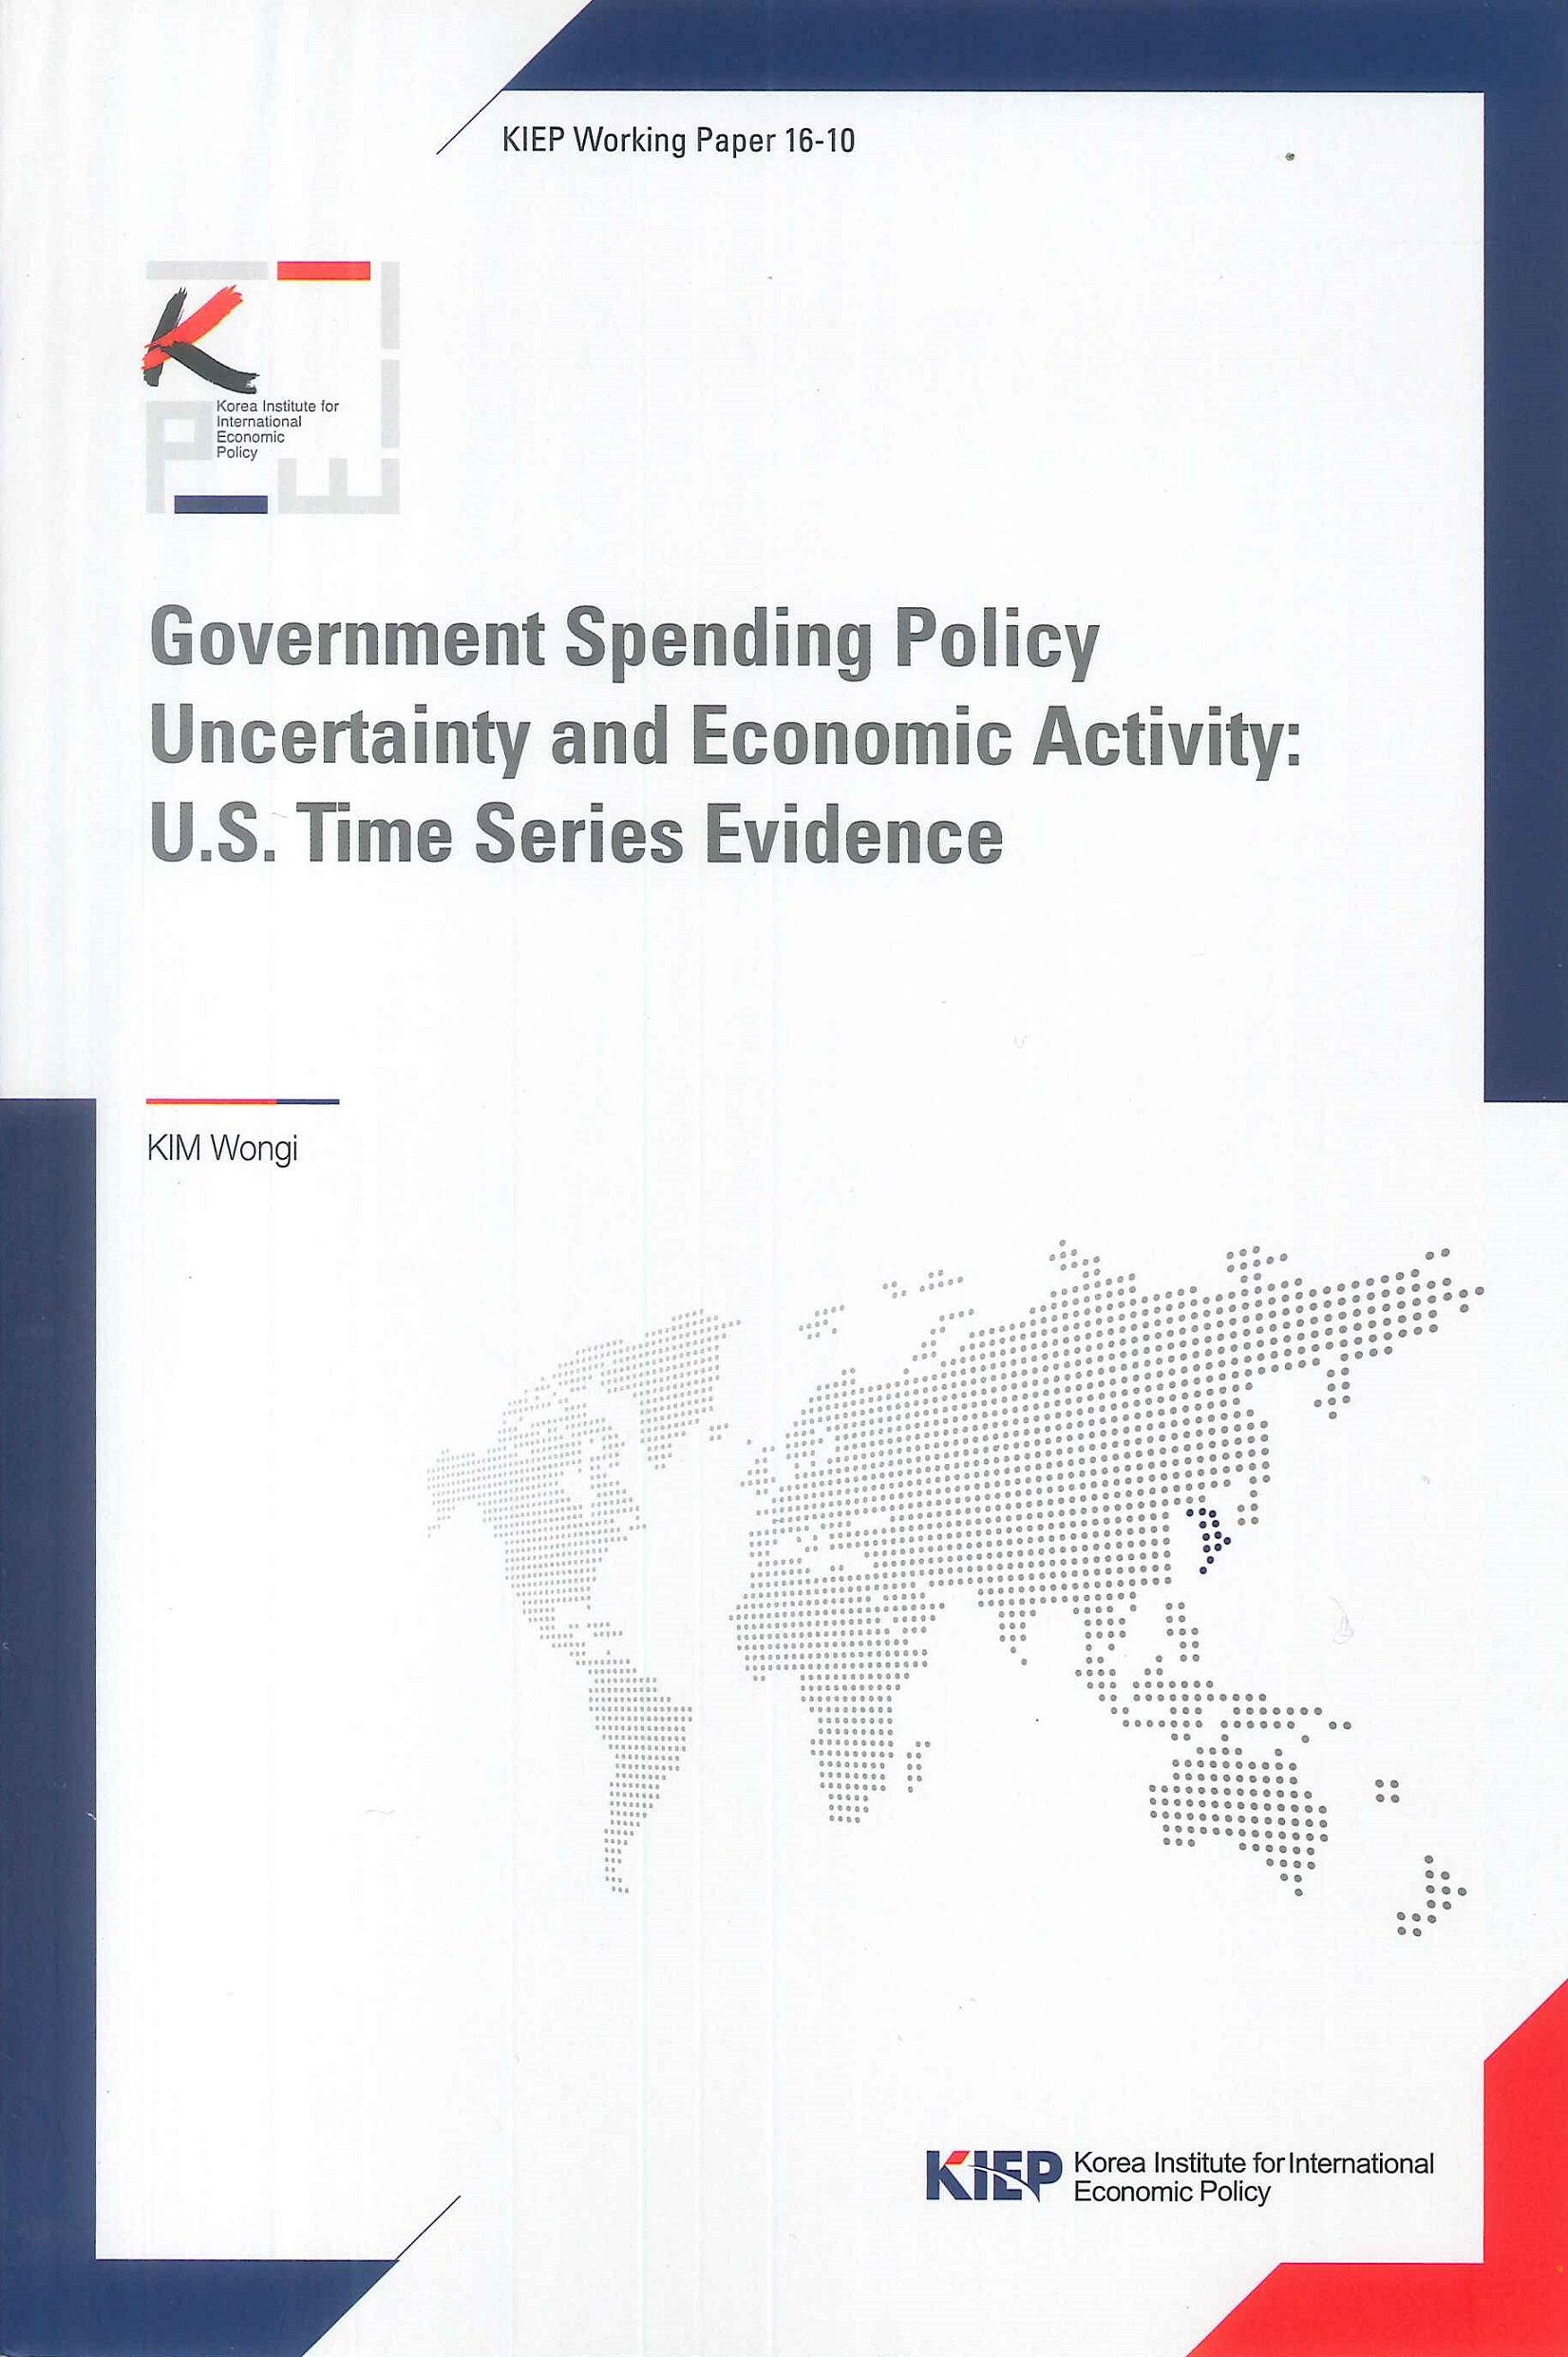 Government spending policy uncertainty and economic activity:U.S. time series evidence